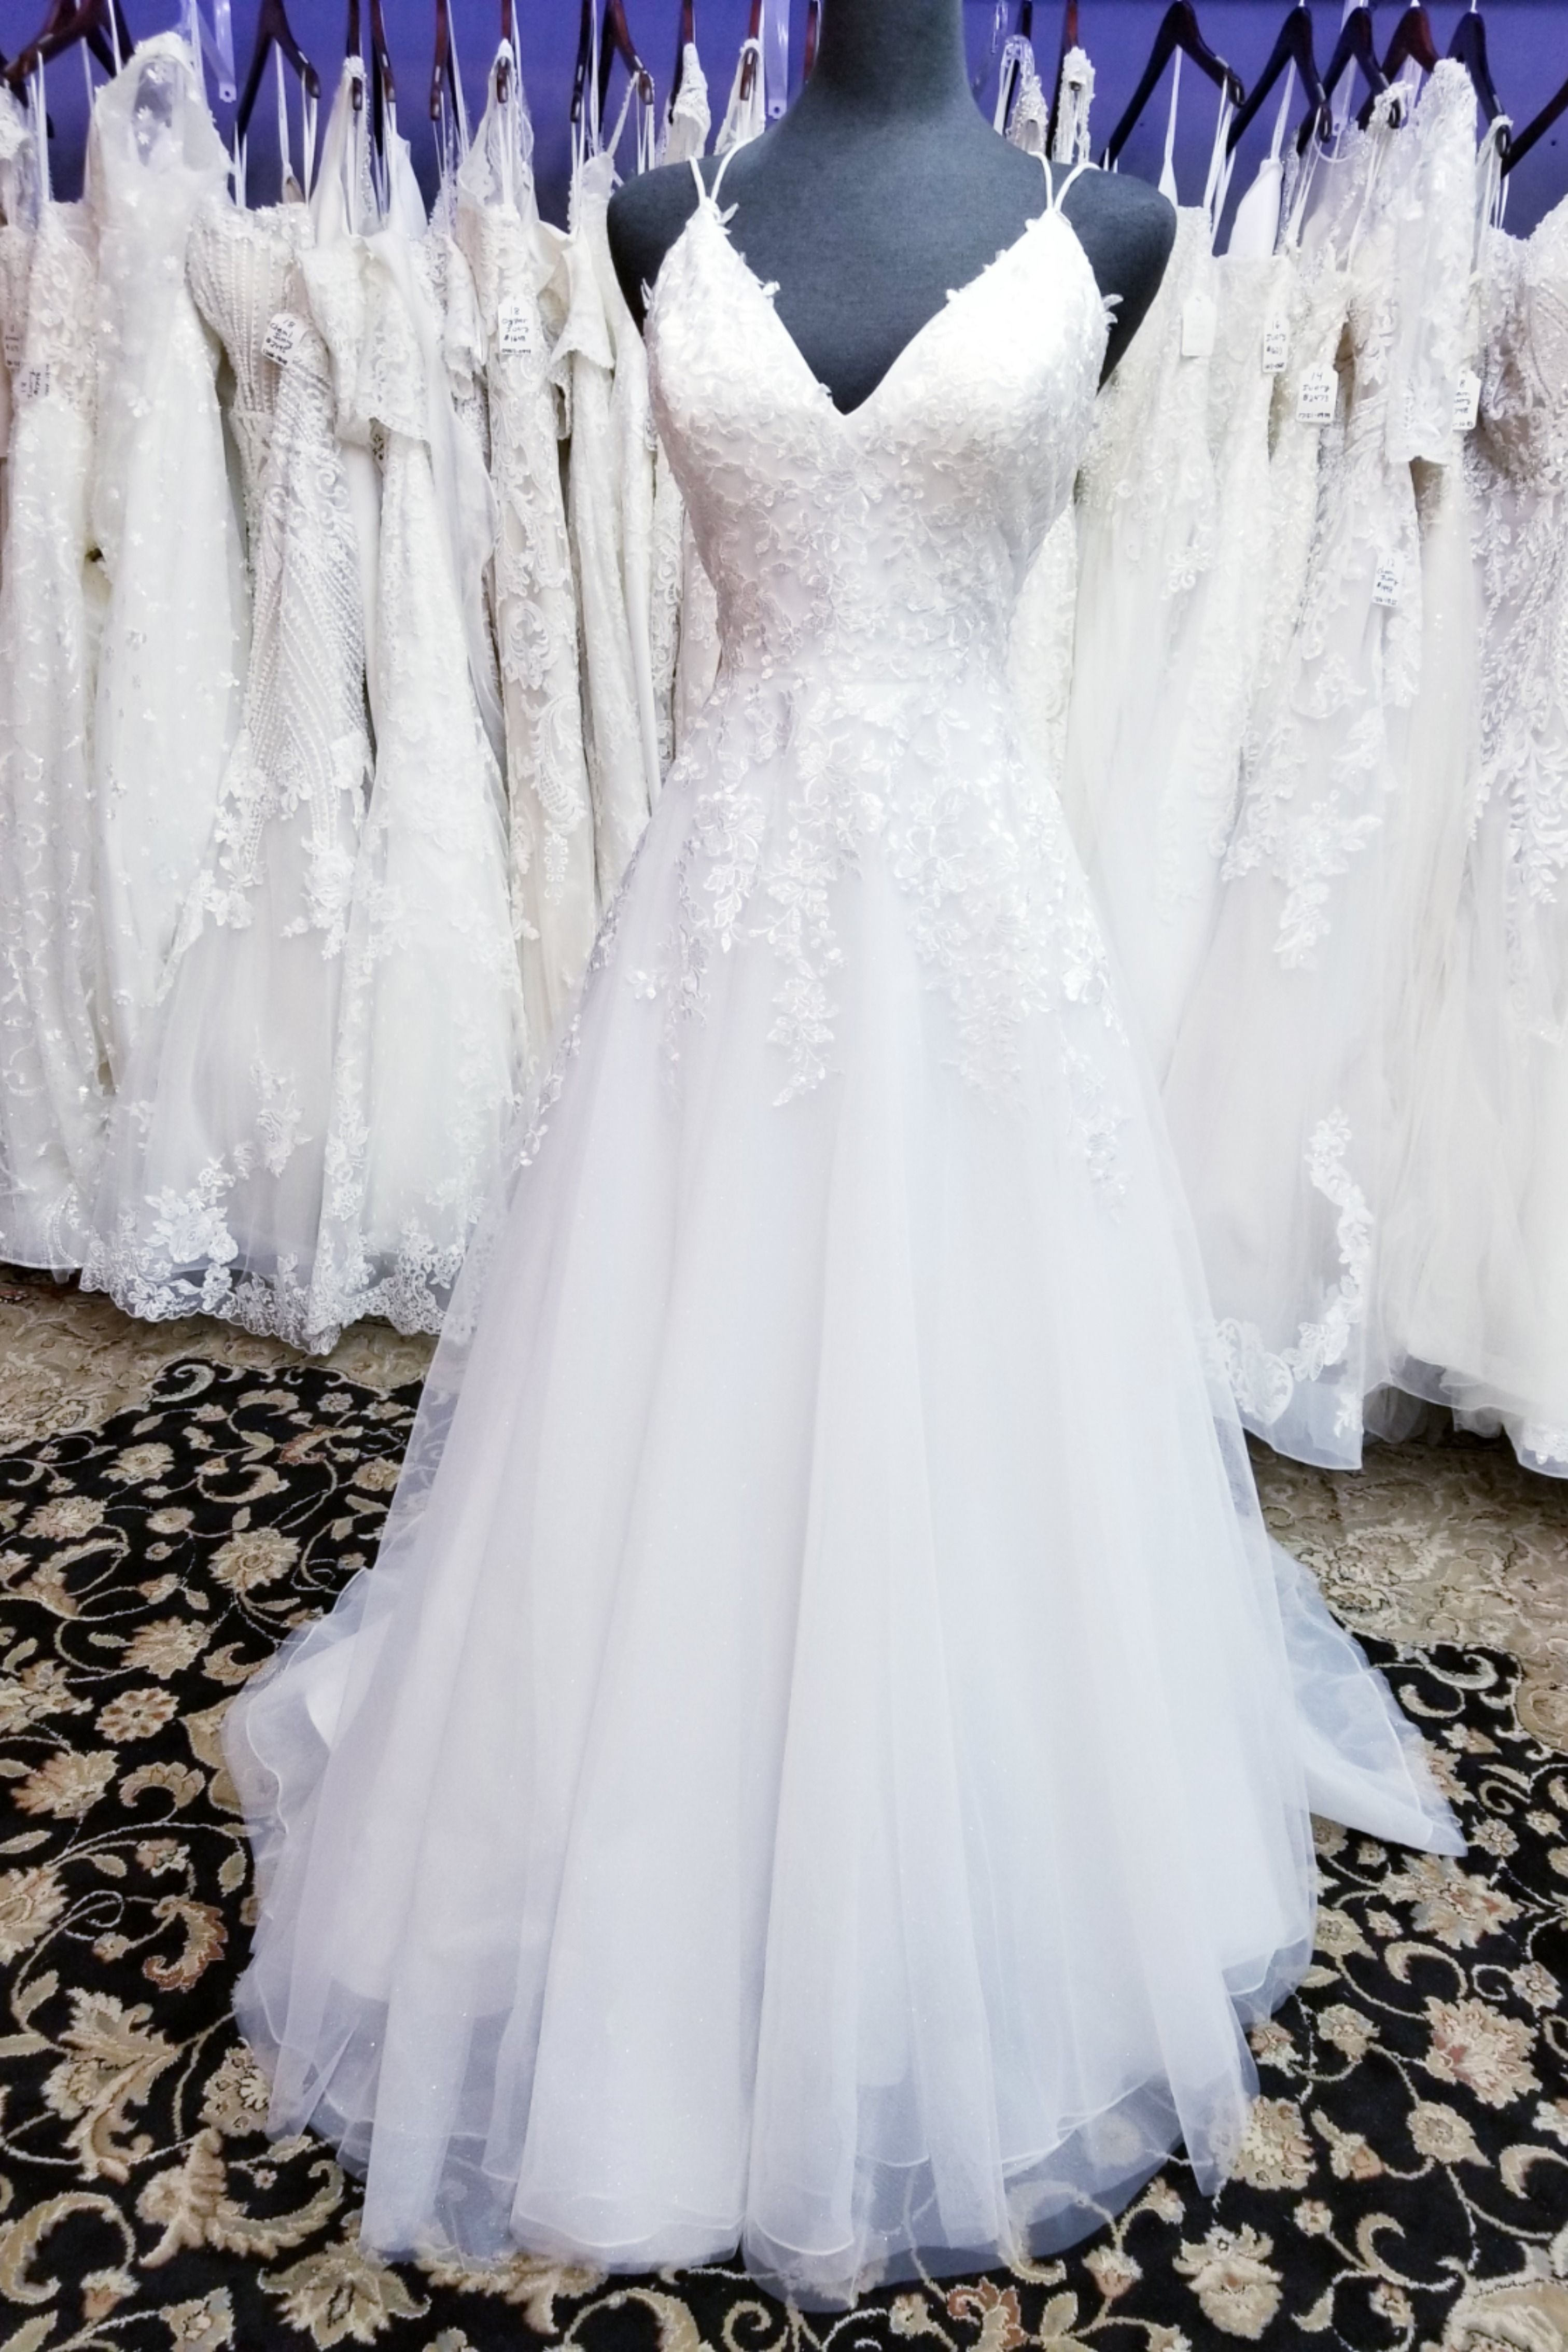 Dress 4 Modified A Line Lace Bridal Gown In 2020 Beaded Lace Wedding Dress Wedding Dresses Lace Bridal Gown